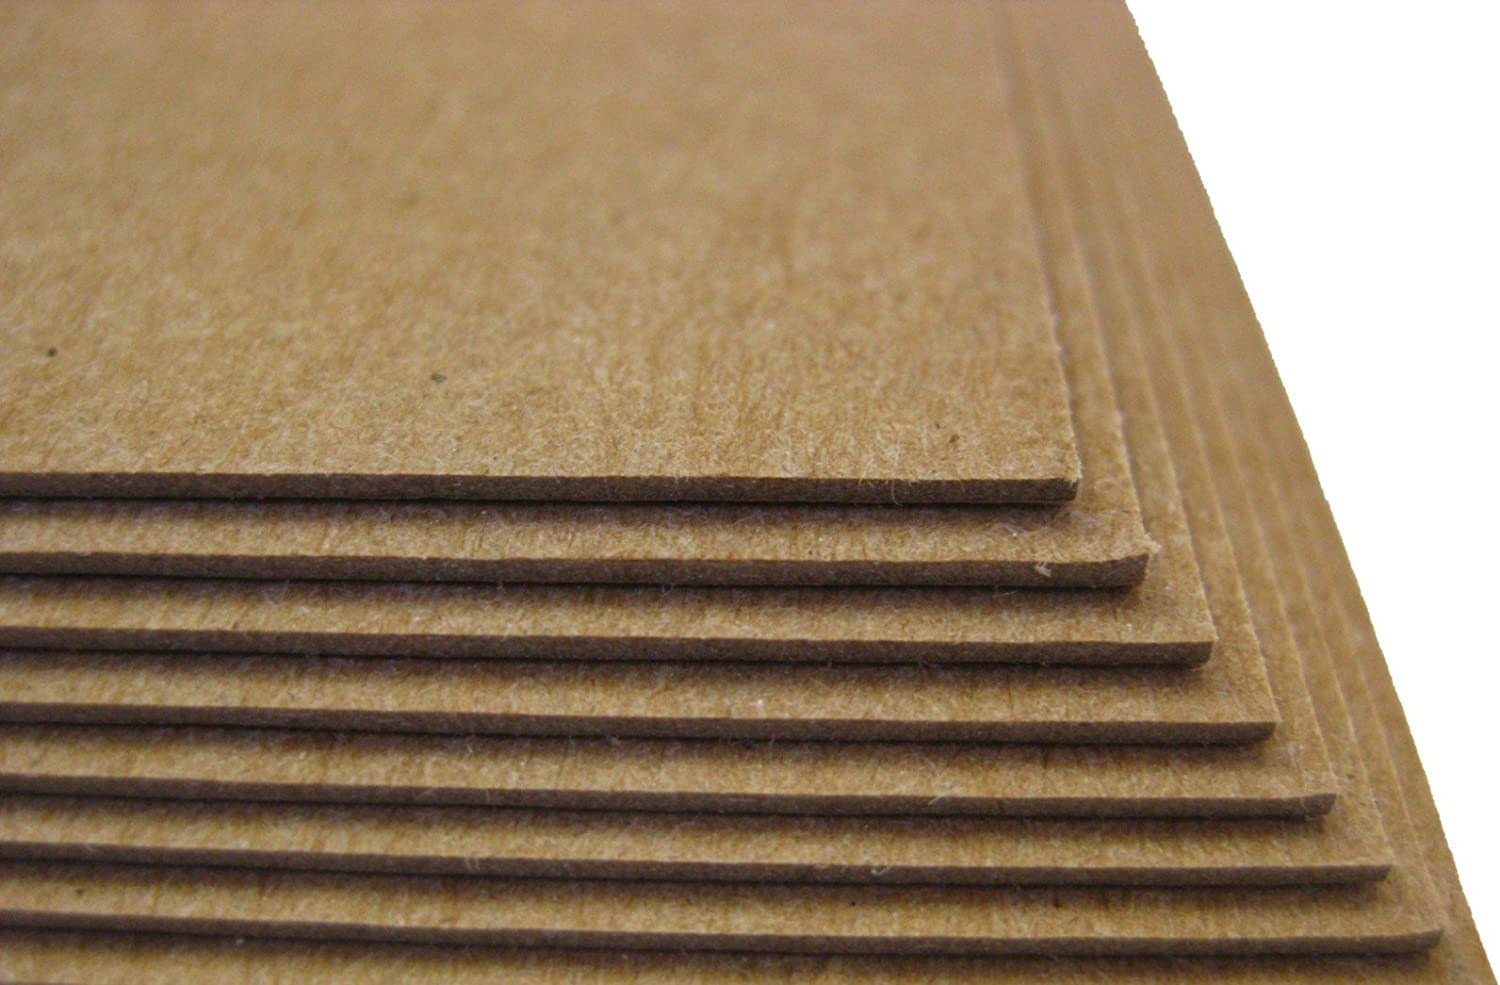 25 Sheets Chipboard 46pt 8.5 X 11 Inches Heavy Weight Letter Size .046 Caliper Thick Cardboard Craft|Packaging Brown Kraft Paper Board Point